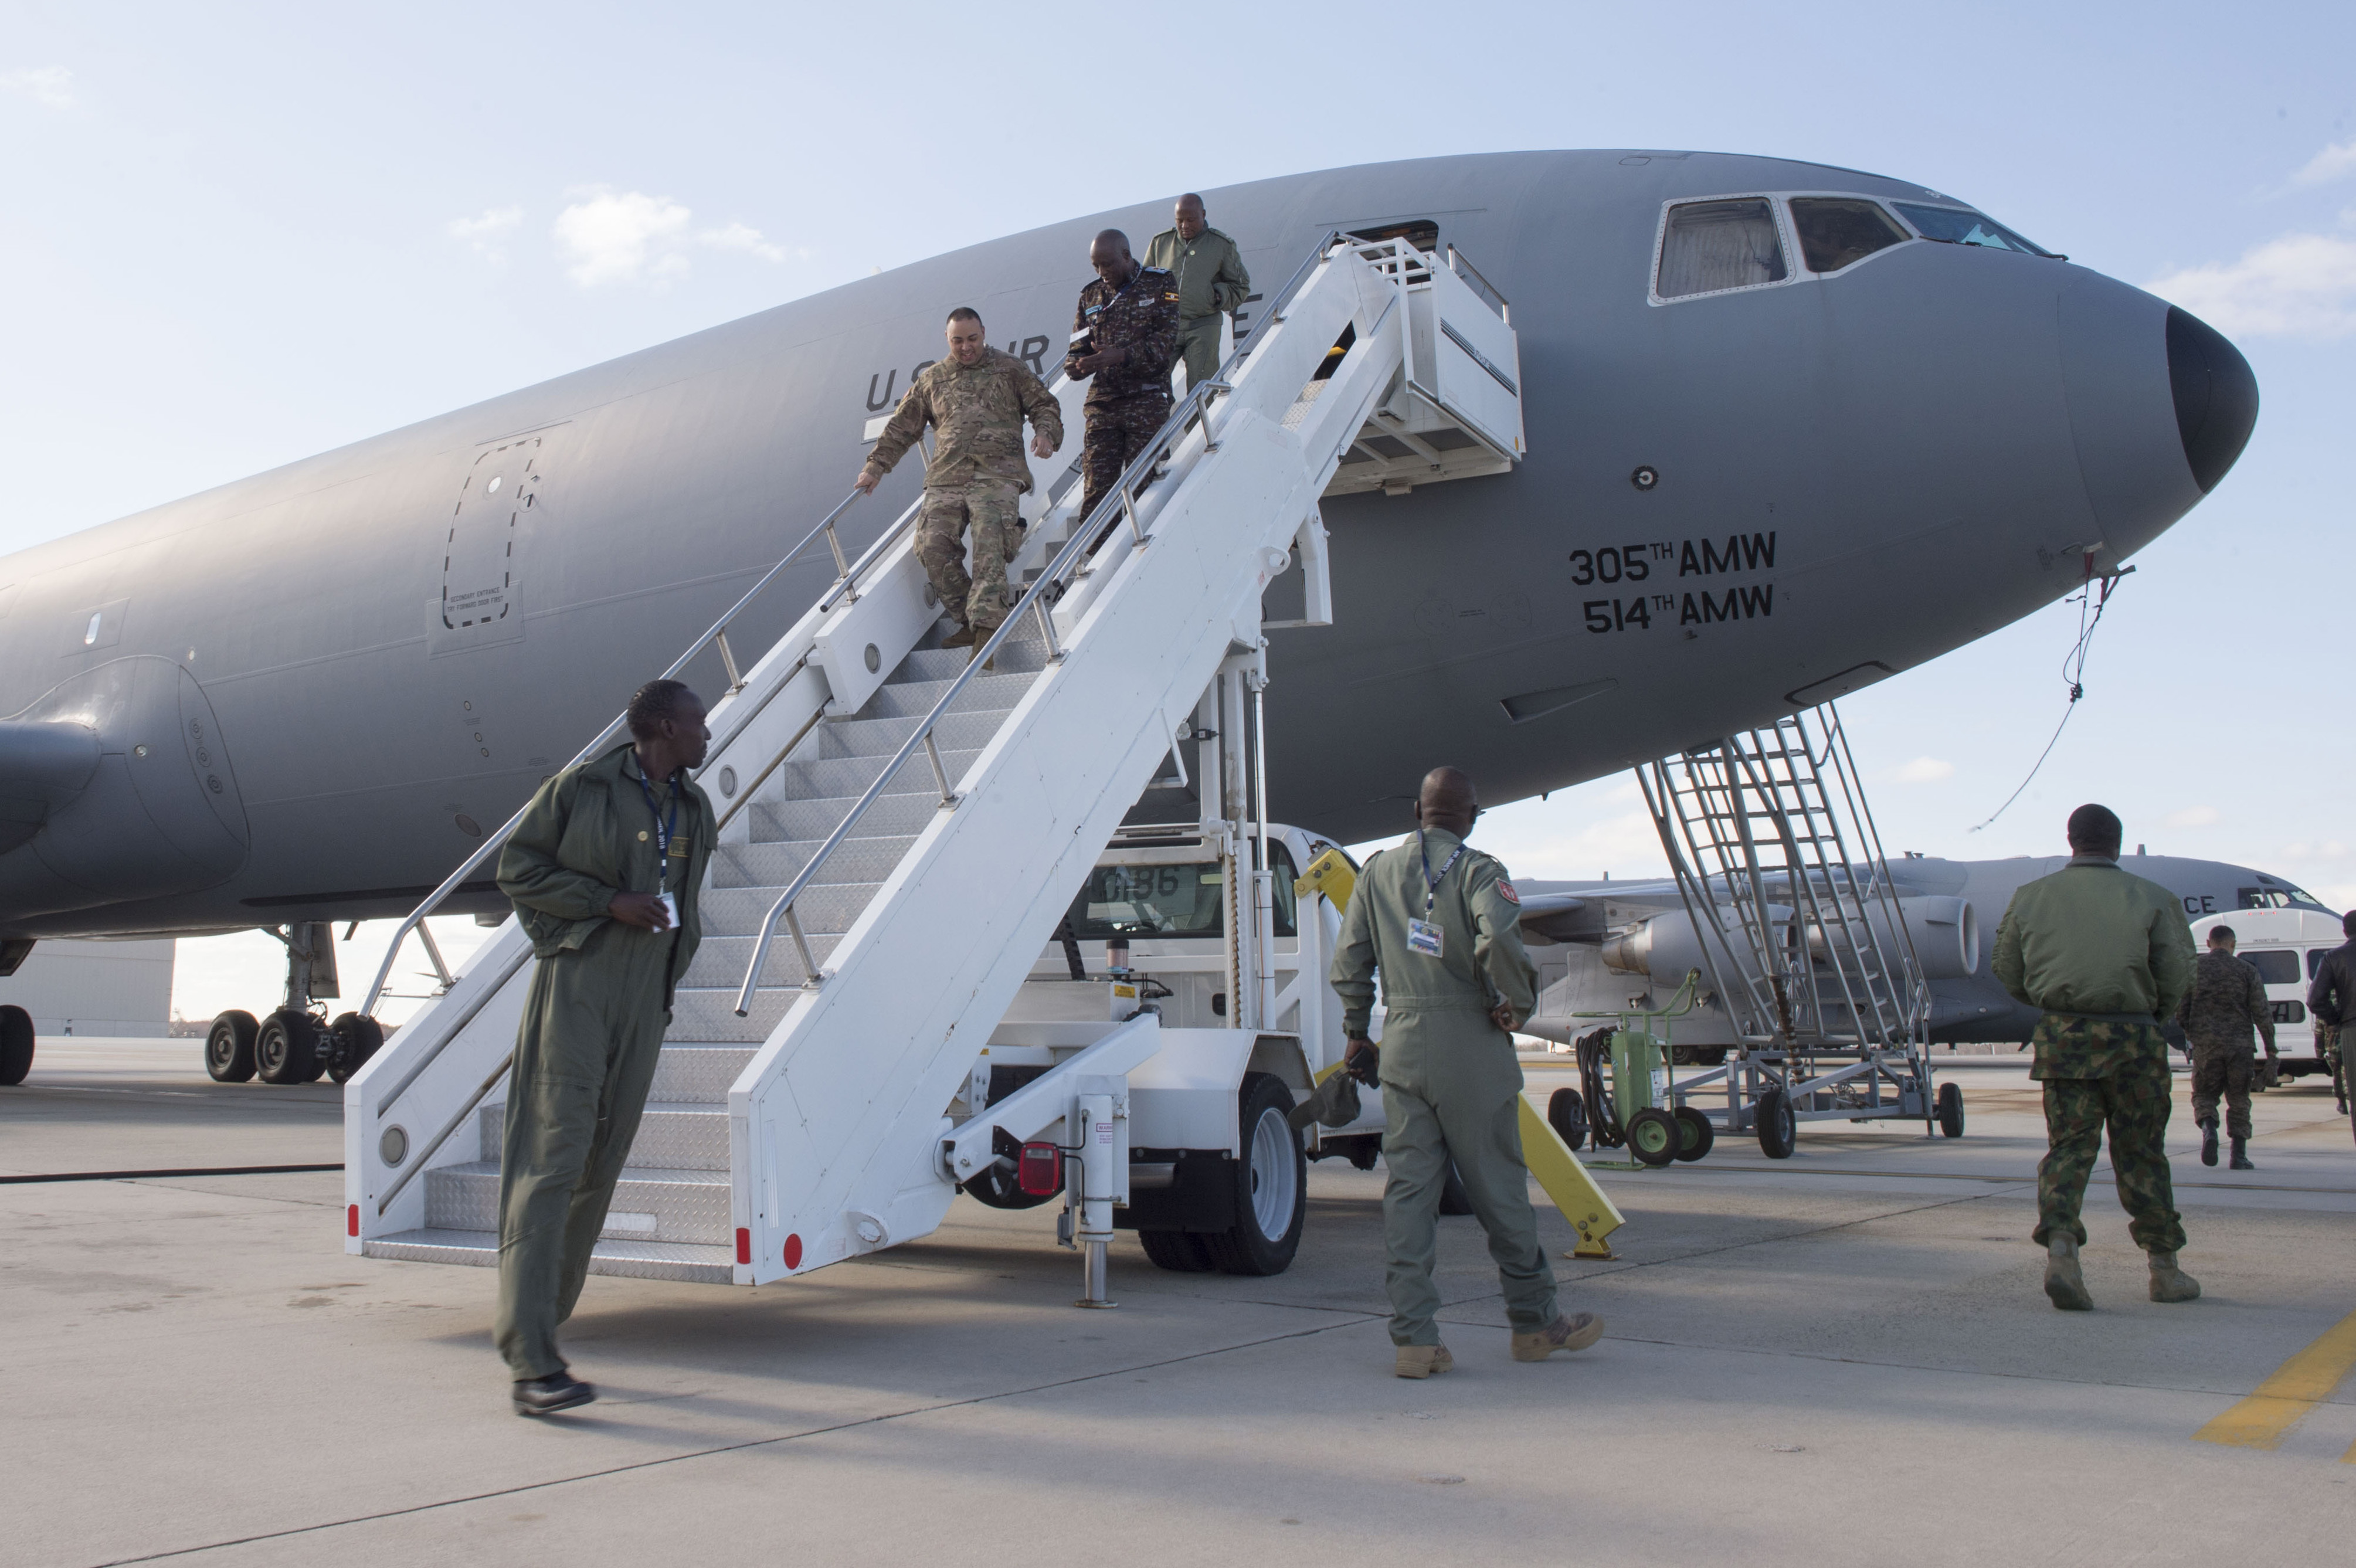 Participants of the African Partnership Flight disembark from a U.S. KC-10 Extender during a tour at Joint Base McGuire-Dix-Lakehurst, N.J., April 20, 2018. APF is sponsored and developed by U.S. Air Forces Africa and is the premier security cooperation program which partners the U.S. and African personnel to improve professional military aviation knowledge, skills, and cooperation. (U.S. Air Force photo by Tech. Sgt. Gustavo Gonzalez)